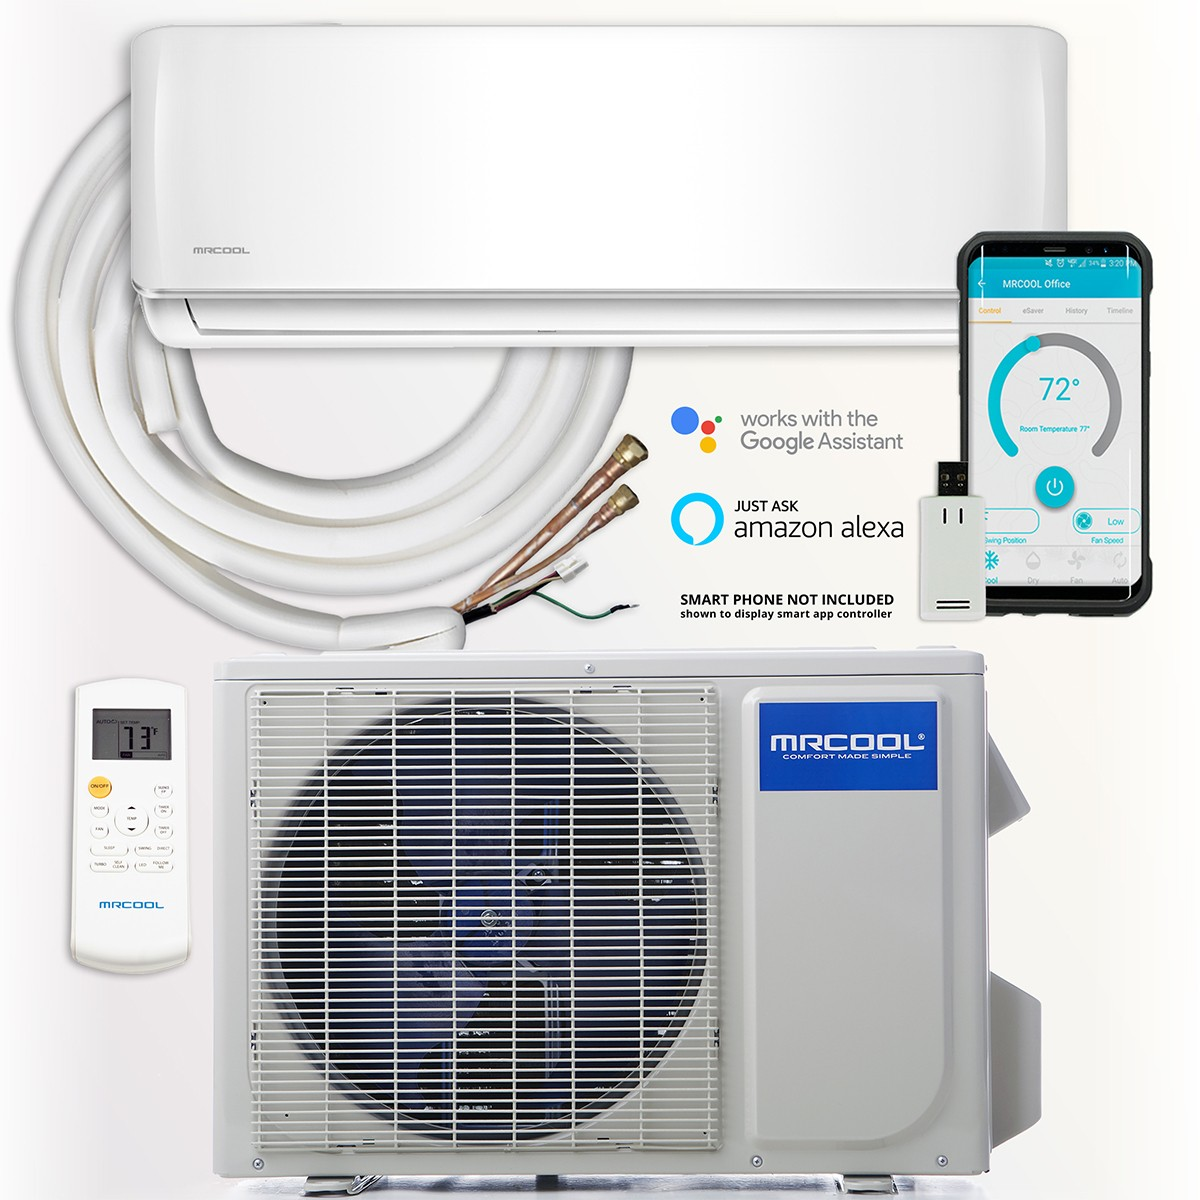 MRCOOL DIY 36,000 BTU Mini Split AC Heat Pump w/ Smart Controller